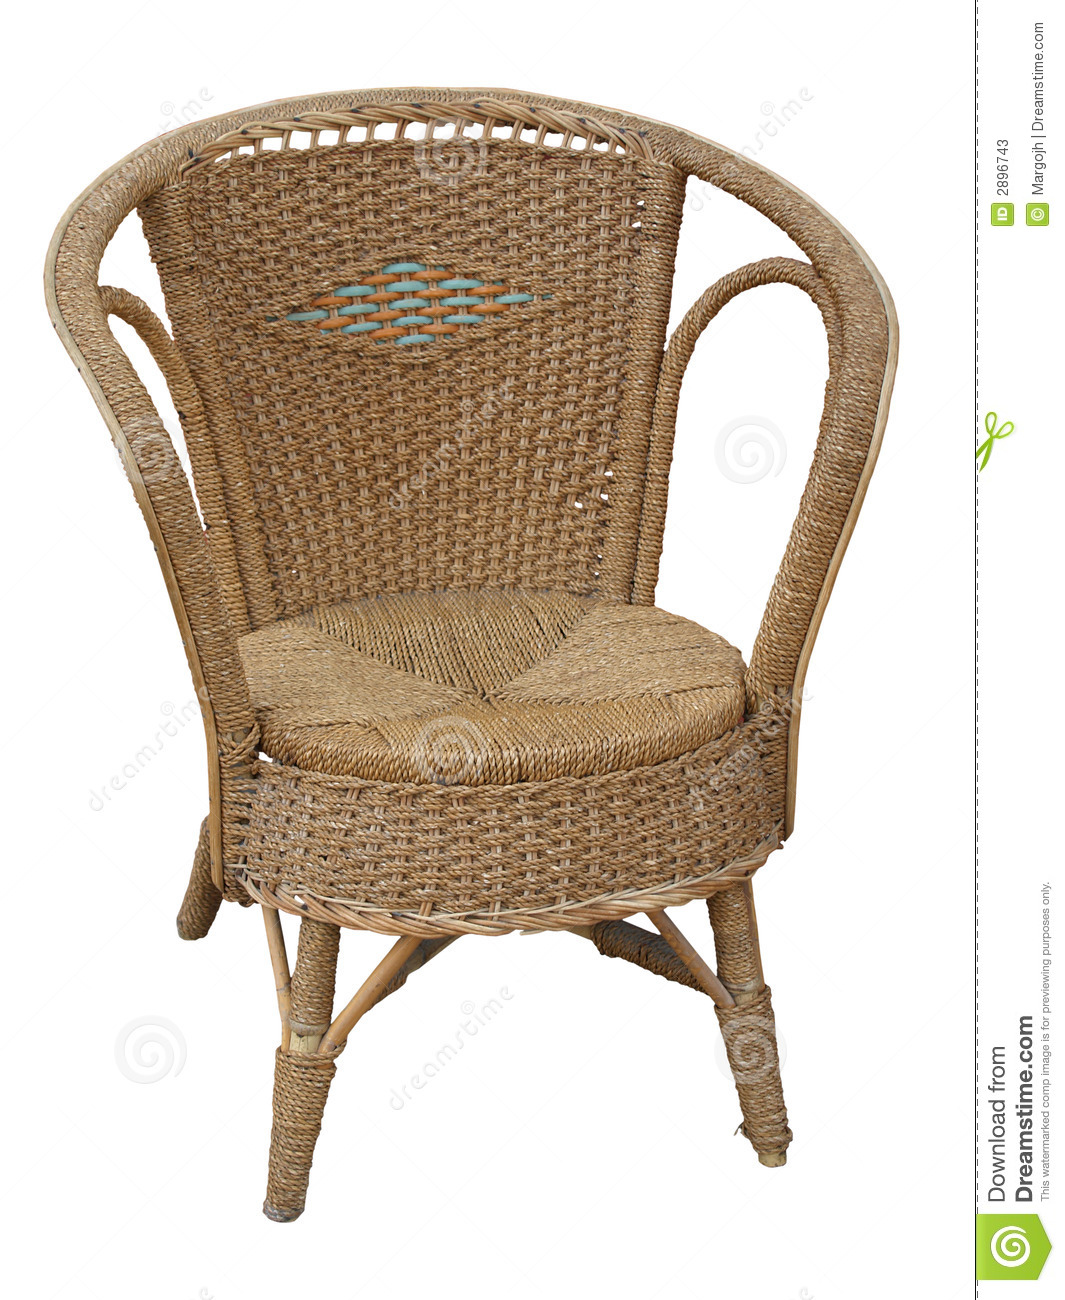 antique cane chairs ethan allen giselle chair stock image of exterior